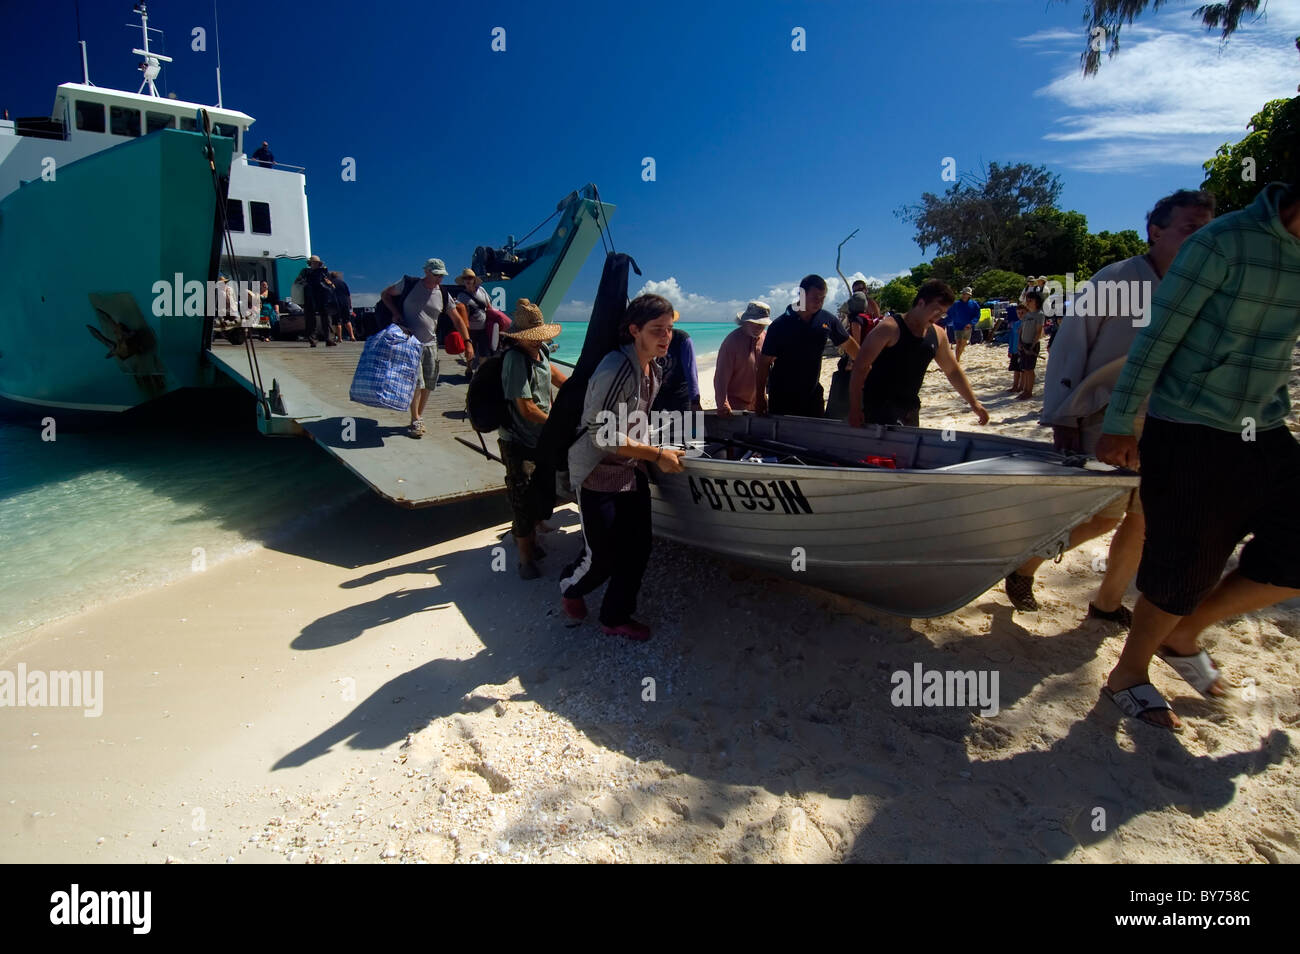 Resupply barge beached on North West Island, Capricorn Bunker Group, southern Great Barrier Reef Marine Park, Australia - Stock Image